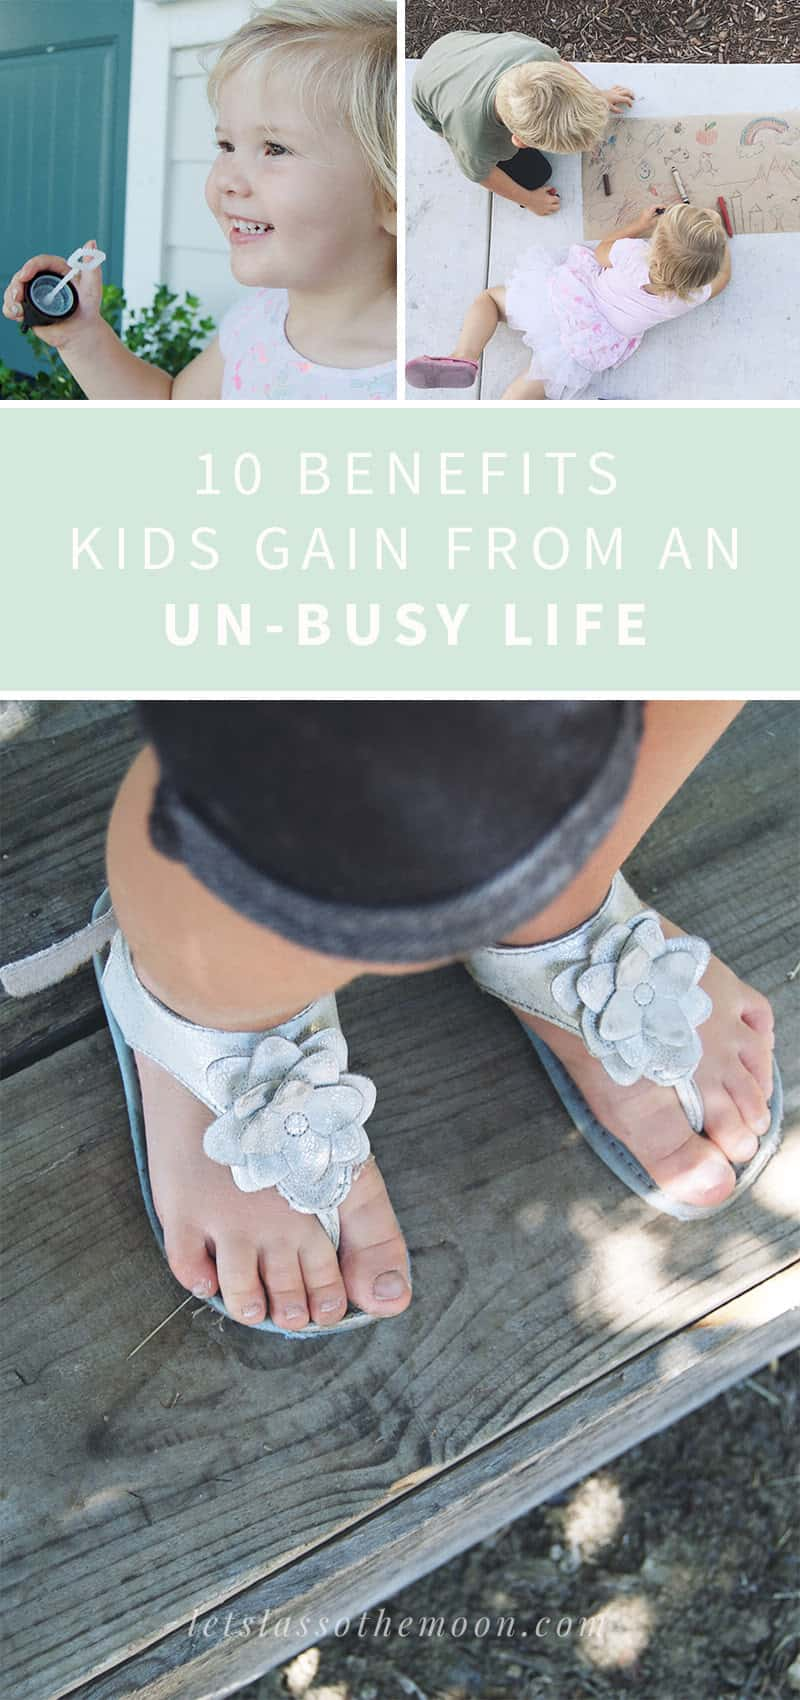 10 Benefits Kids Gain From An UN-BUSY Life: Life should be taken at the pace that suits you and your family. Embrace an un-busy life today. Enjoy these ten benefits to living slow (and purposefully) with your kids. *Loved this post! Such a good read for parents.